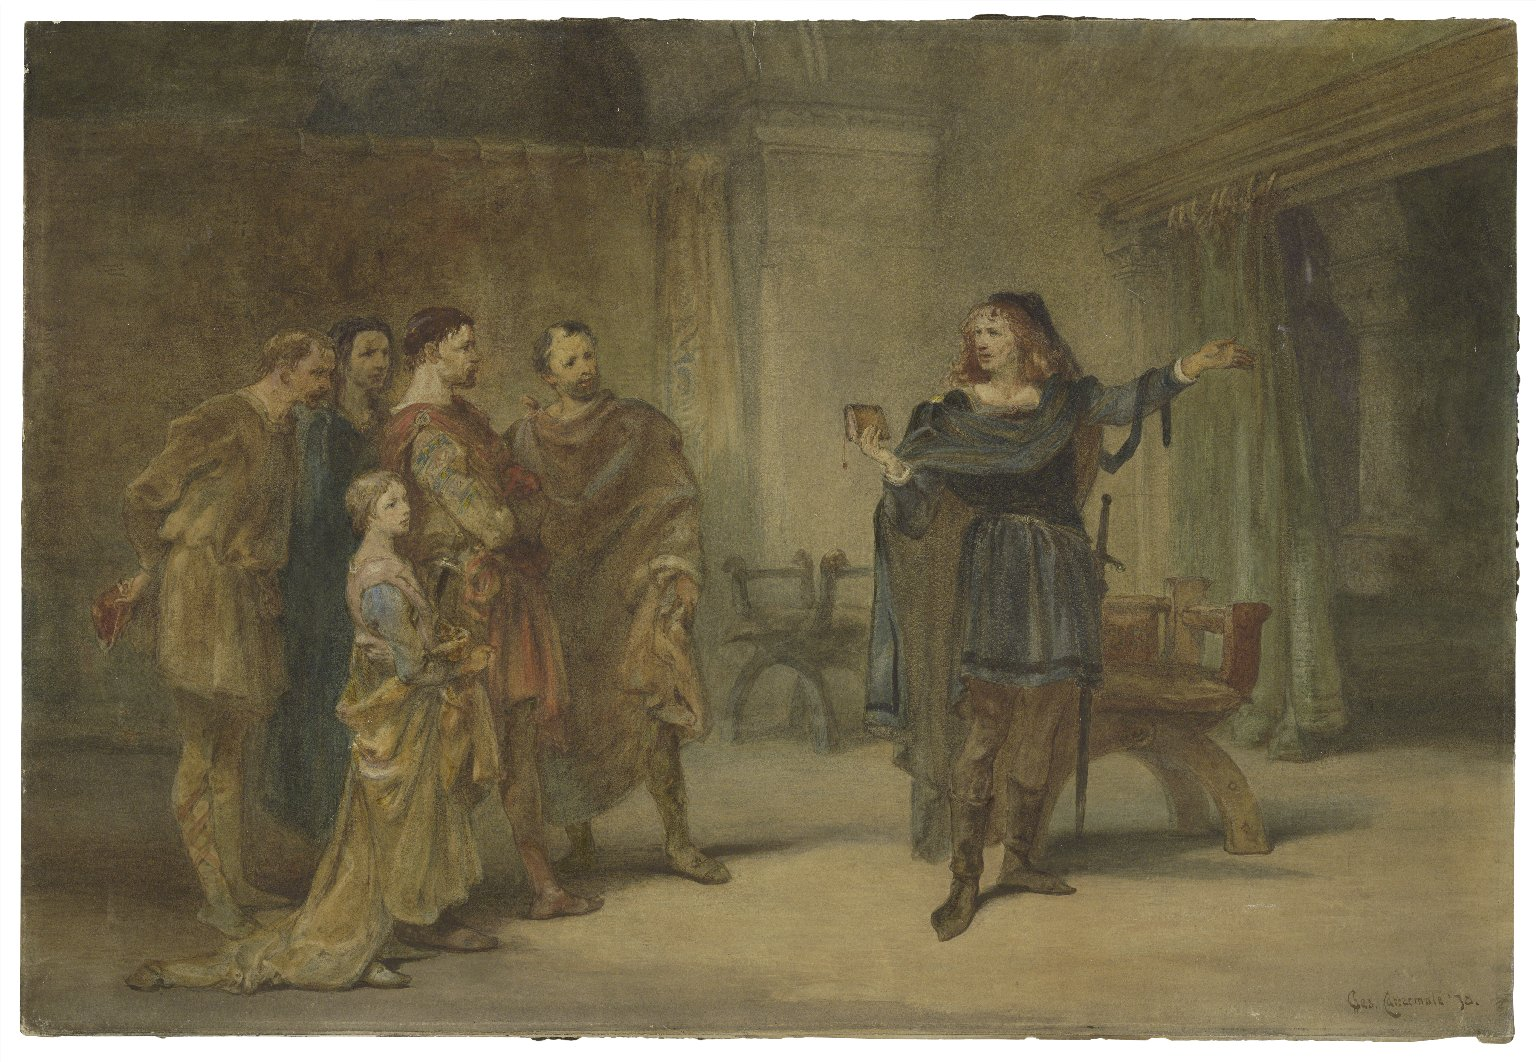 <b>Hamlet, 1878</b>     	</br>A painting of Hamlet, Act III, Scene II, 1878</br><br/><b>Source: </b><i>Charles Cattermole, Hamlet and the players (Call number: ART Box C368.5 no.3), 1878, Folger Digital Image Collection, University of Cincinnati Libraries Digital Collections, University of Cincinnati, http://digproj.libraries.uc.edu:8180/luna/servlet/s/gny1r4</i>